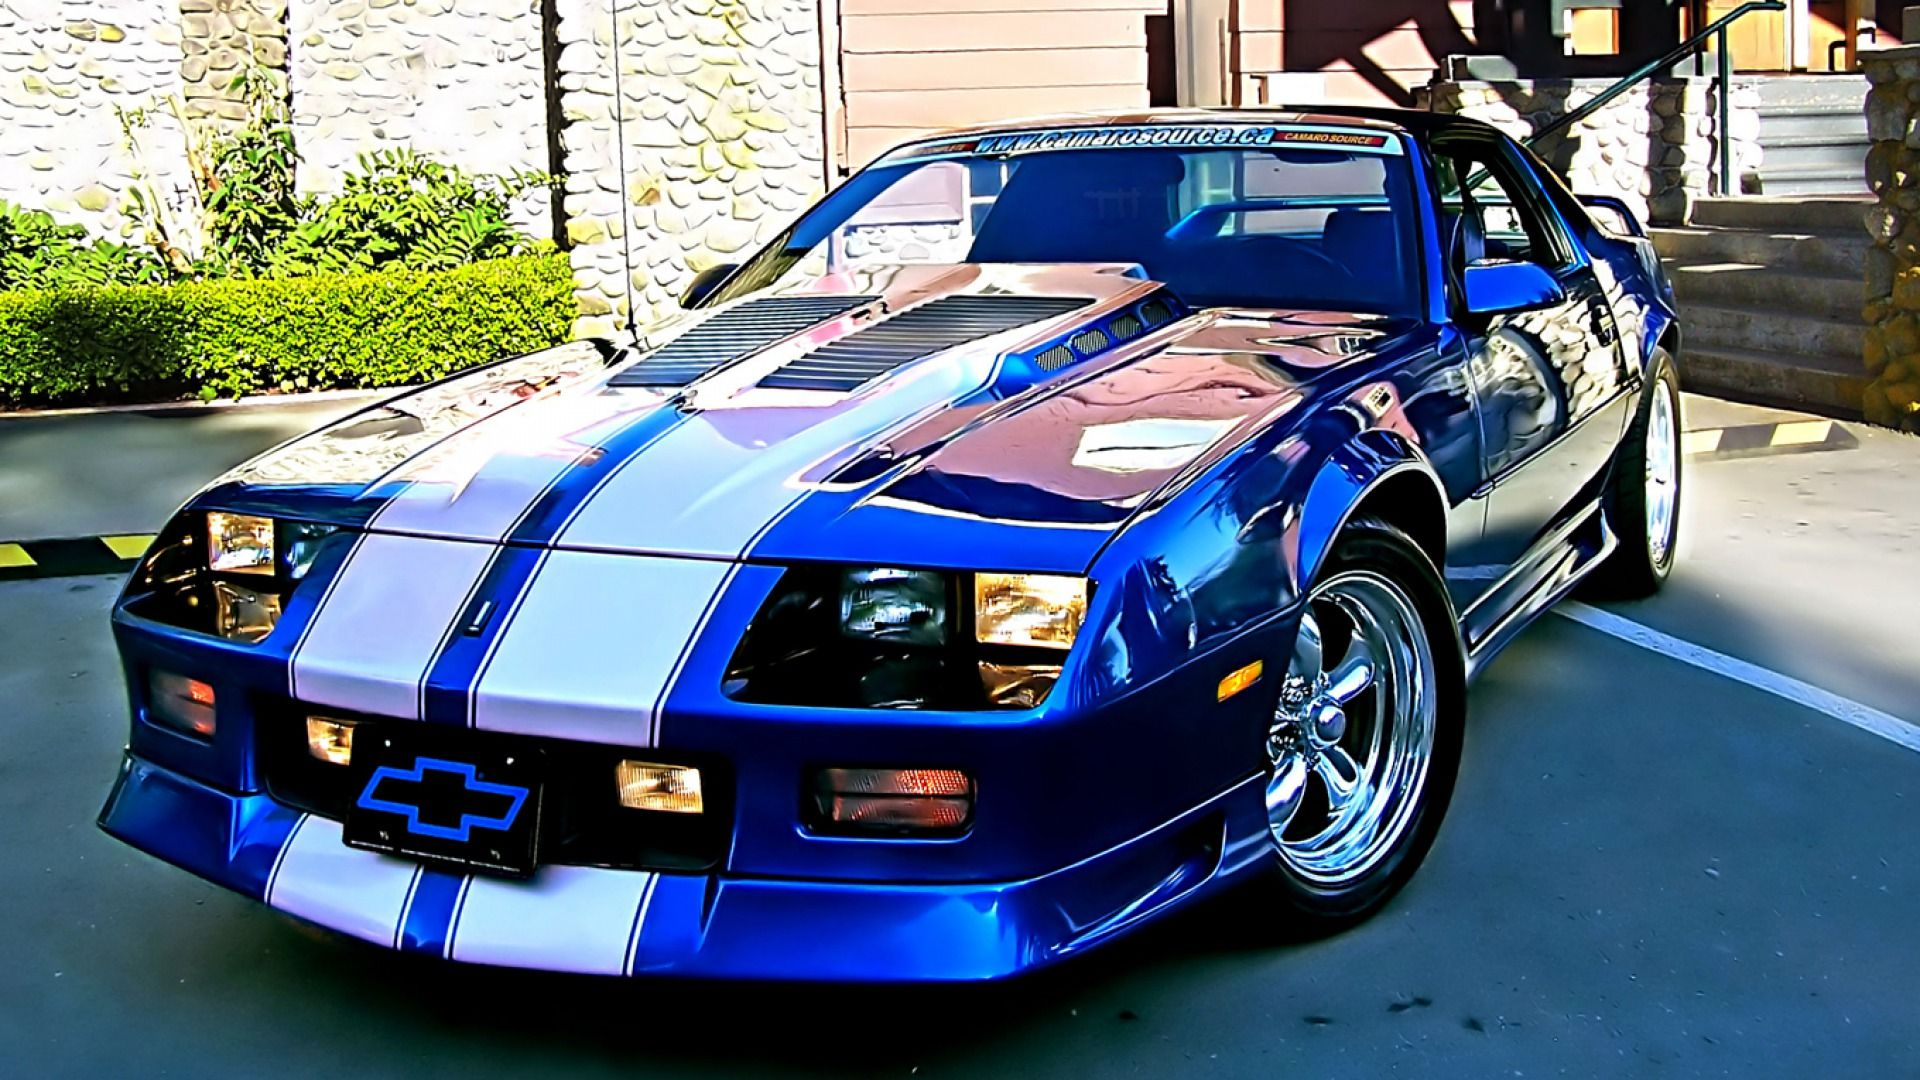 1992 camaro z28 blue silver muscle gta. Black Bedroom Furniture Sets. Home Design Ideas